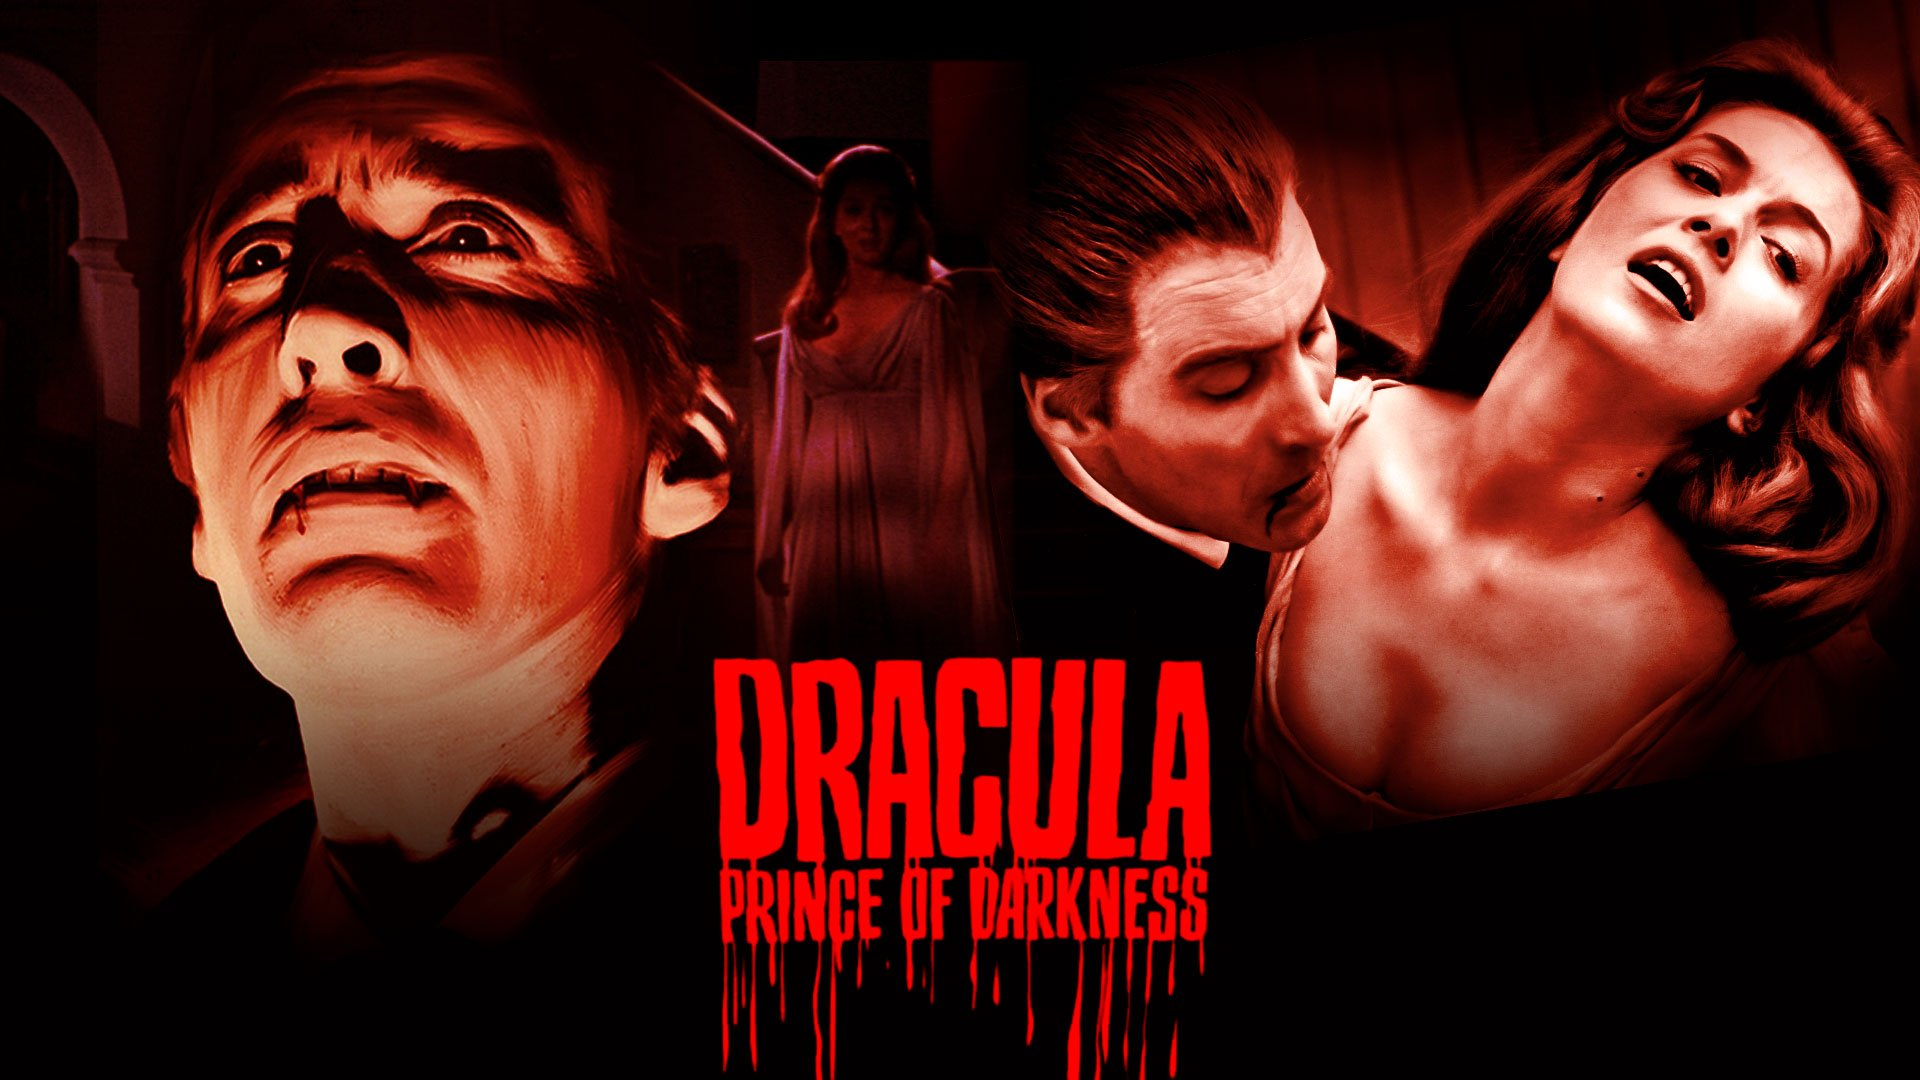 Dracula: Prince of Darkness on BritBox UK